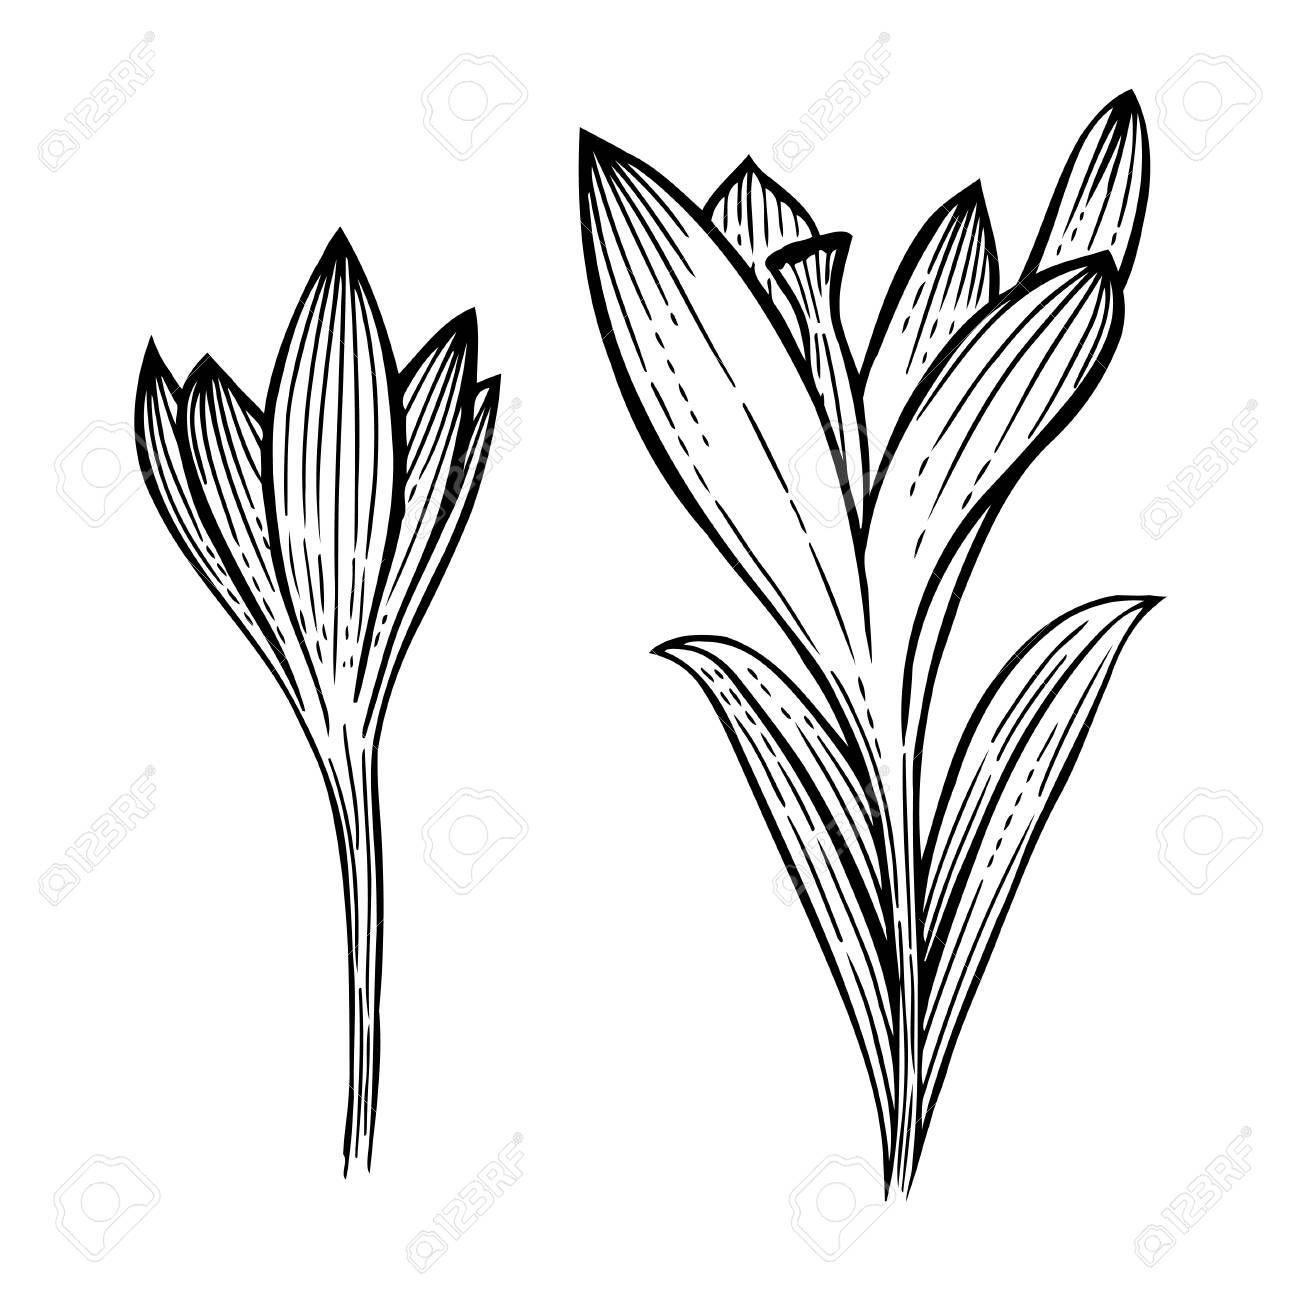 1300x1300 Set Of Summer Flowers Crocus, Sketch Vector Illustration Isolated